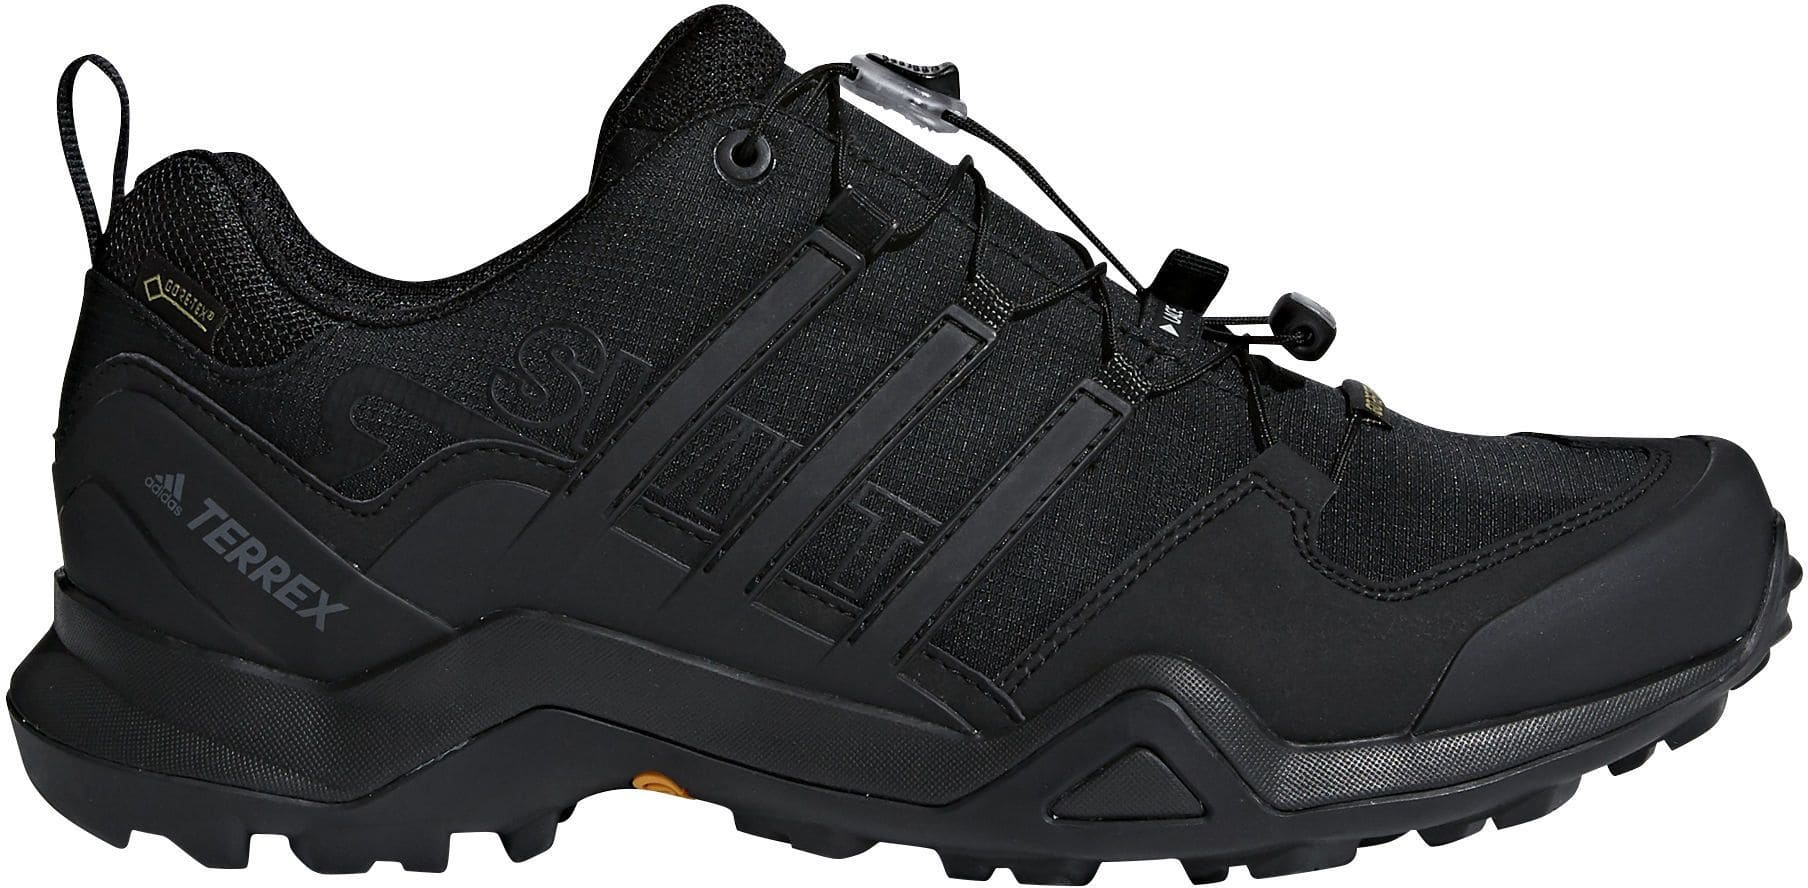 sports shoes 847ef e4f29 Adidas Outdoor Mens Terrex Swift R2 GTX Hiking Shoes 80.99